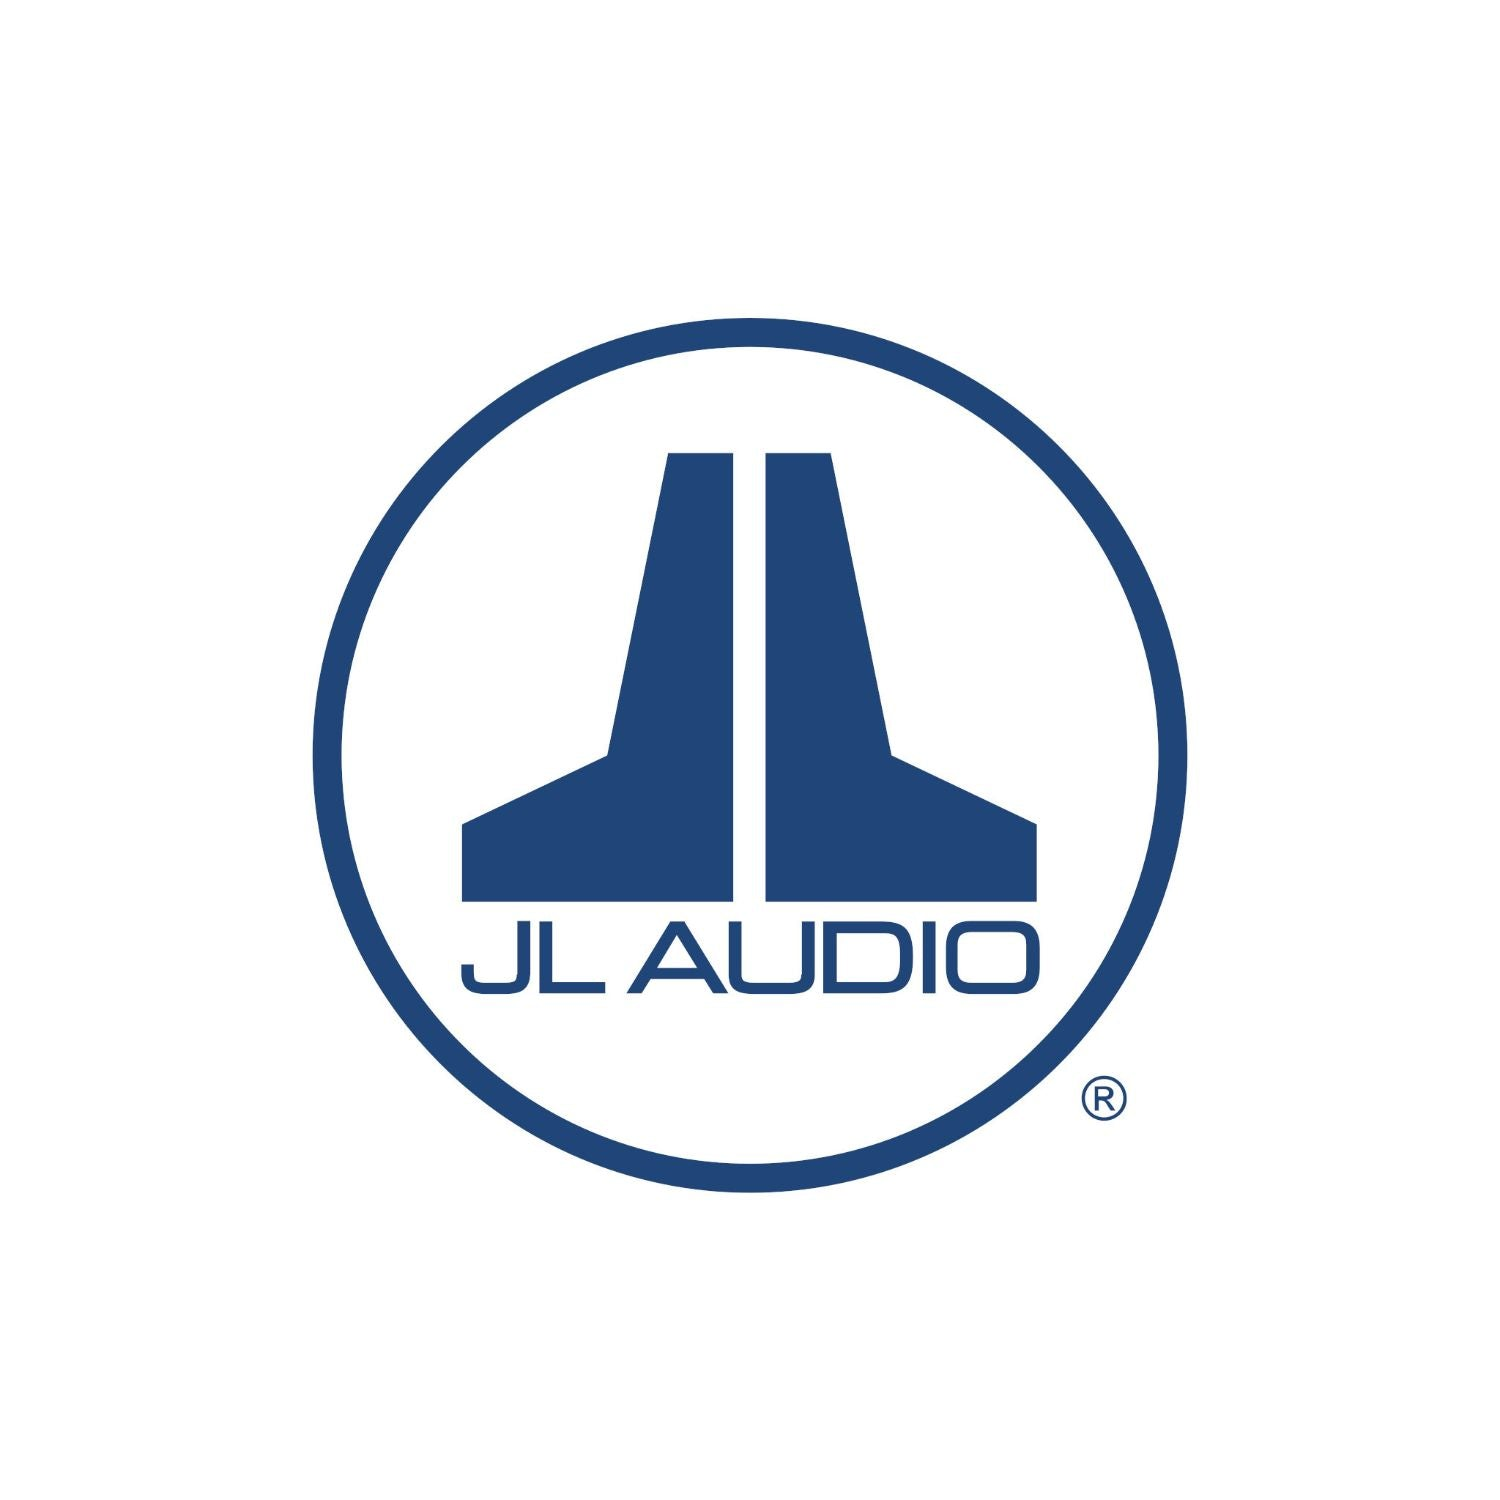 Blue JL Audio Badge Logo Decal